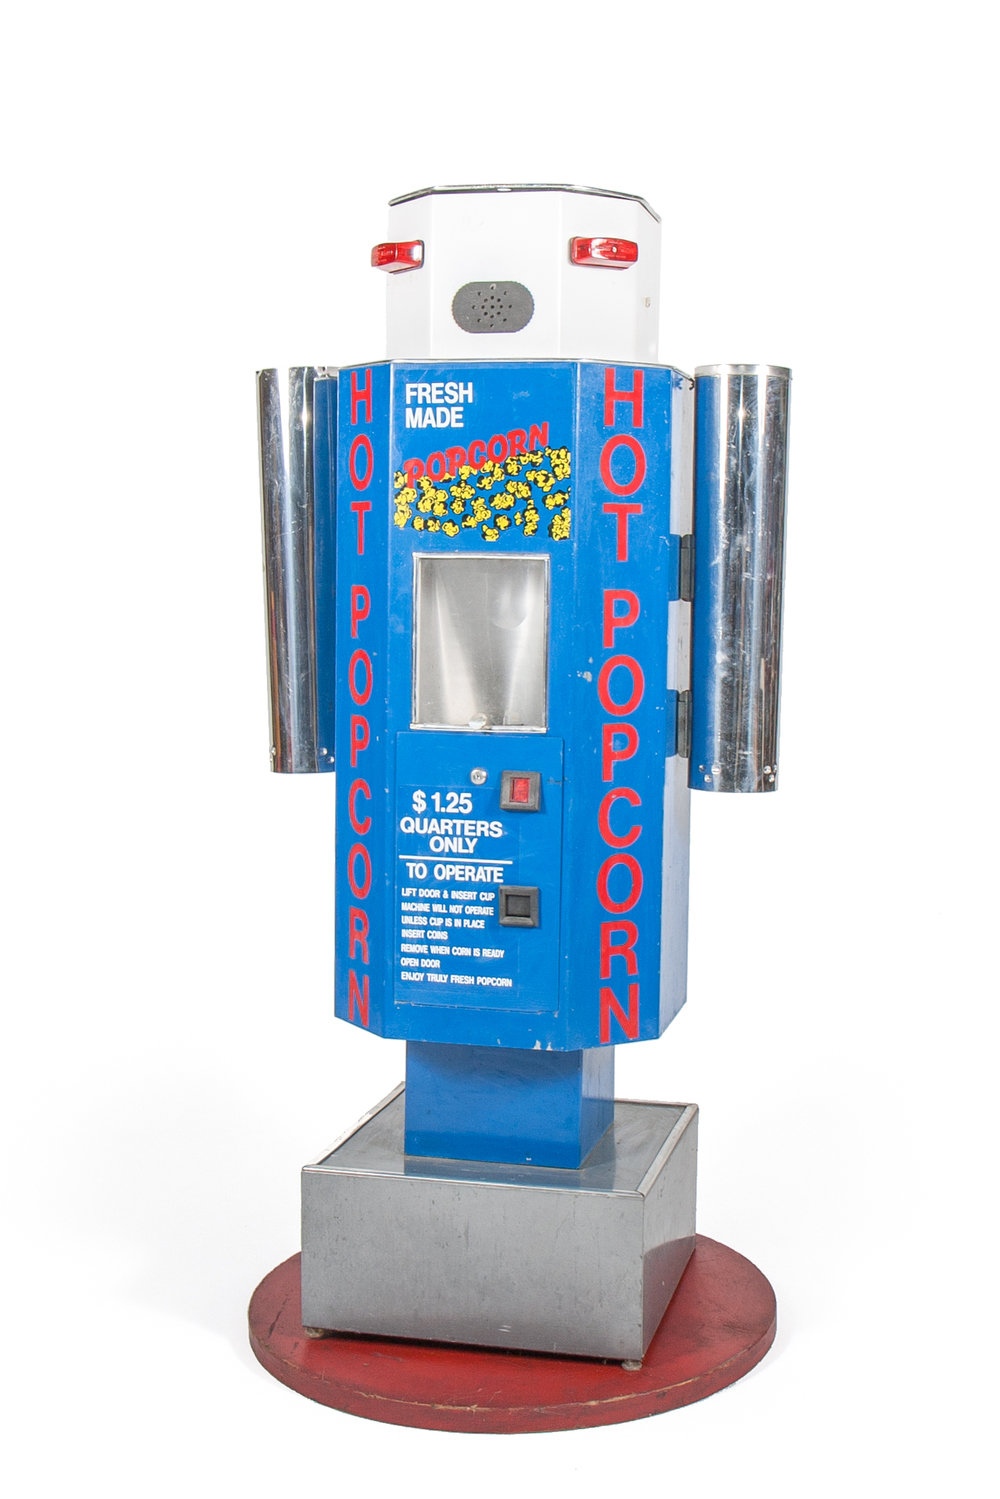 Hot Popcorn Dispensing Machine Robot (circa 1975) - Height 5'3""